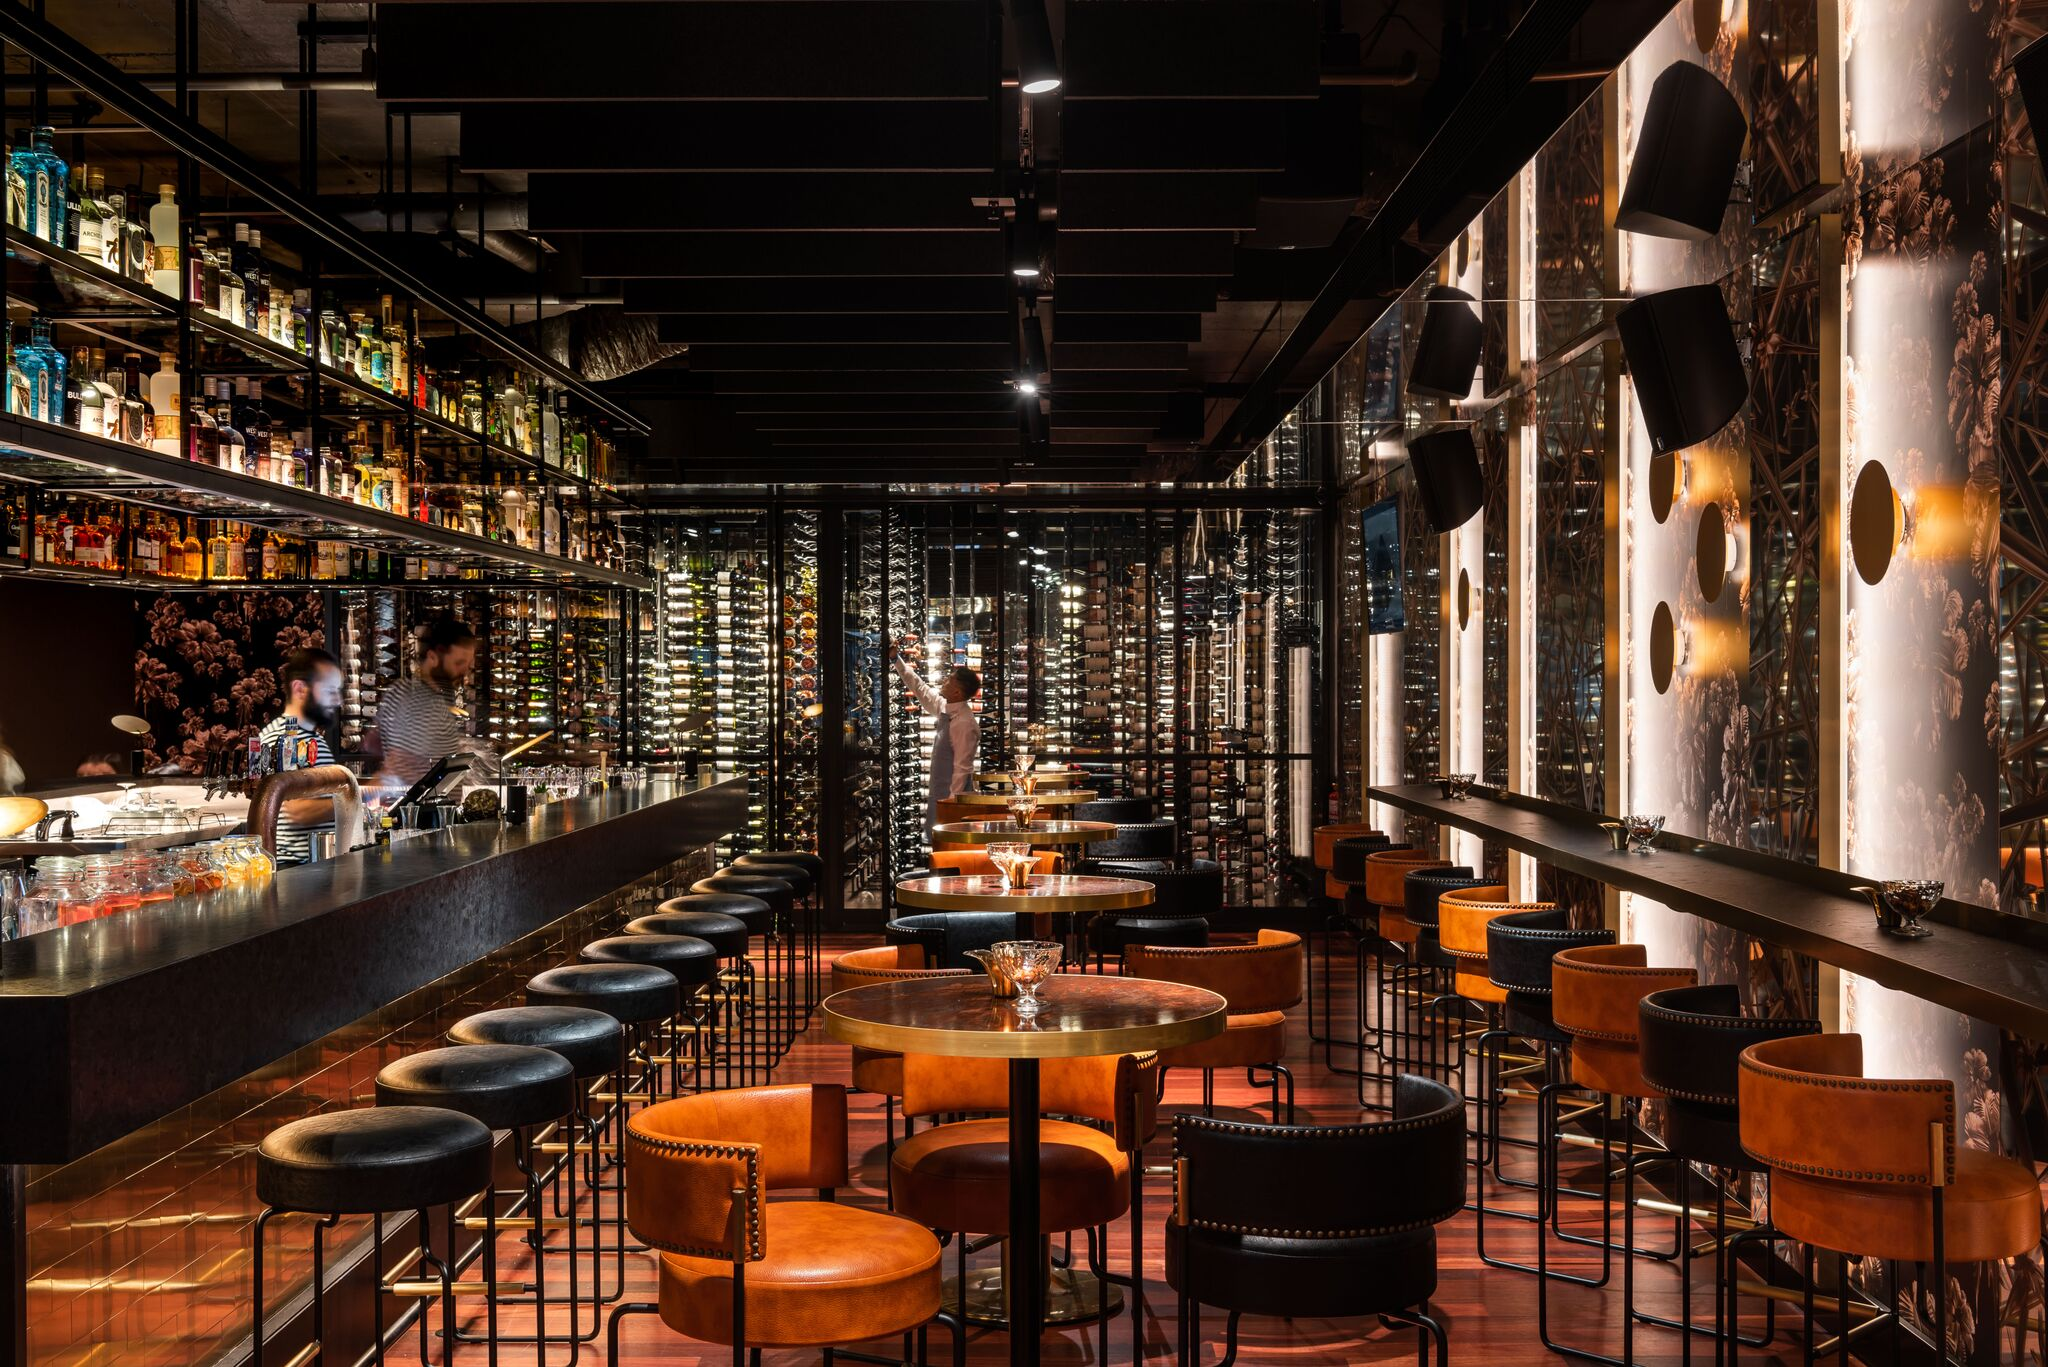 Gallery Of Qt Perth By Nic Graham Local Australian Design & Interiors Perth, Wa Image 16